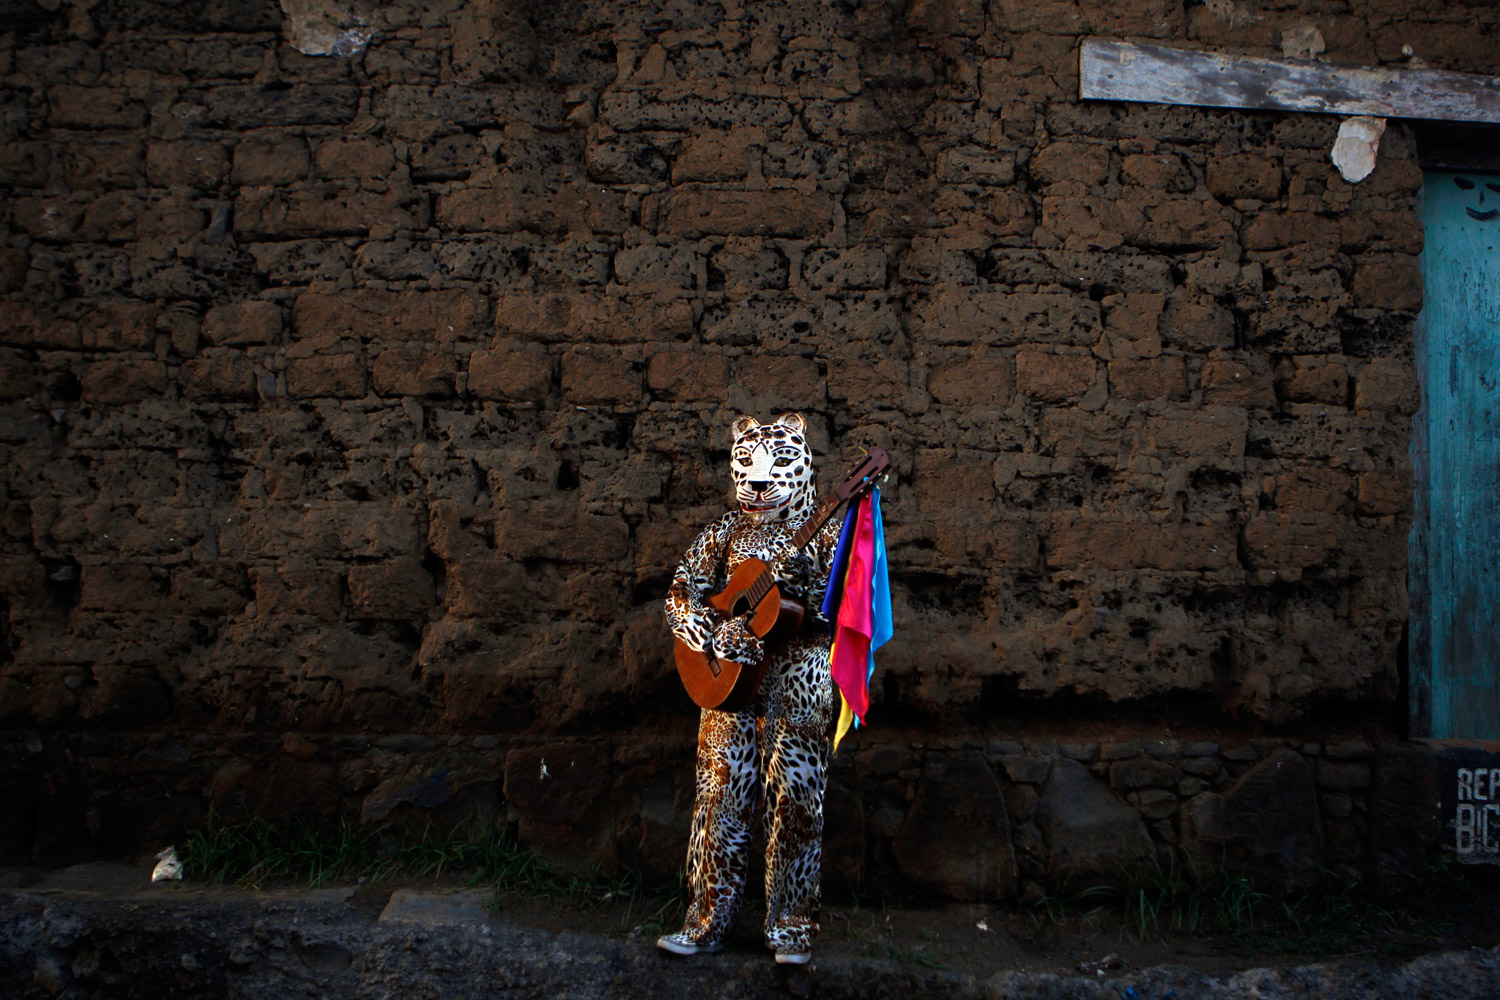 December 4, 2011. A man dressed as a jaguar holds a guitar during closing festivities in honor of Masaya's patron saint, Saint Jerome, in Masaya, Nicaragua. The festival is a three month celebration in honor of the Catholic Saint.